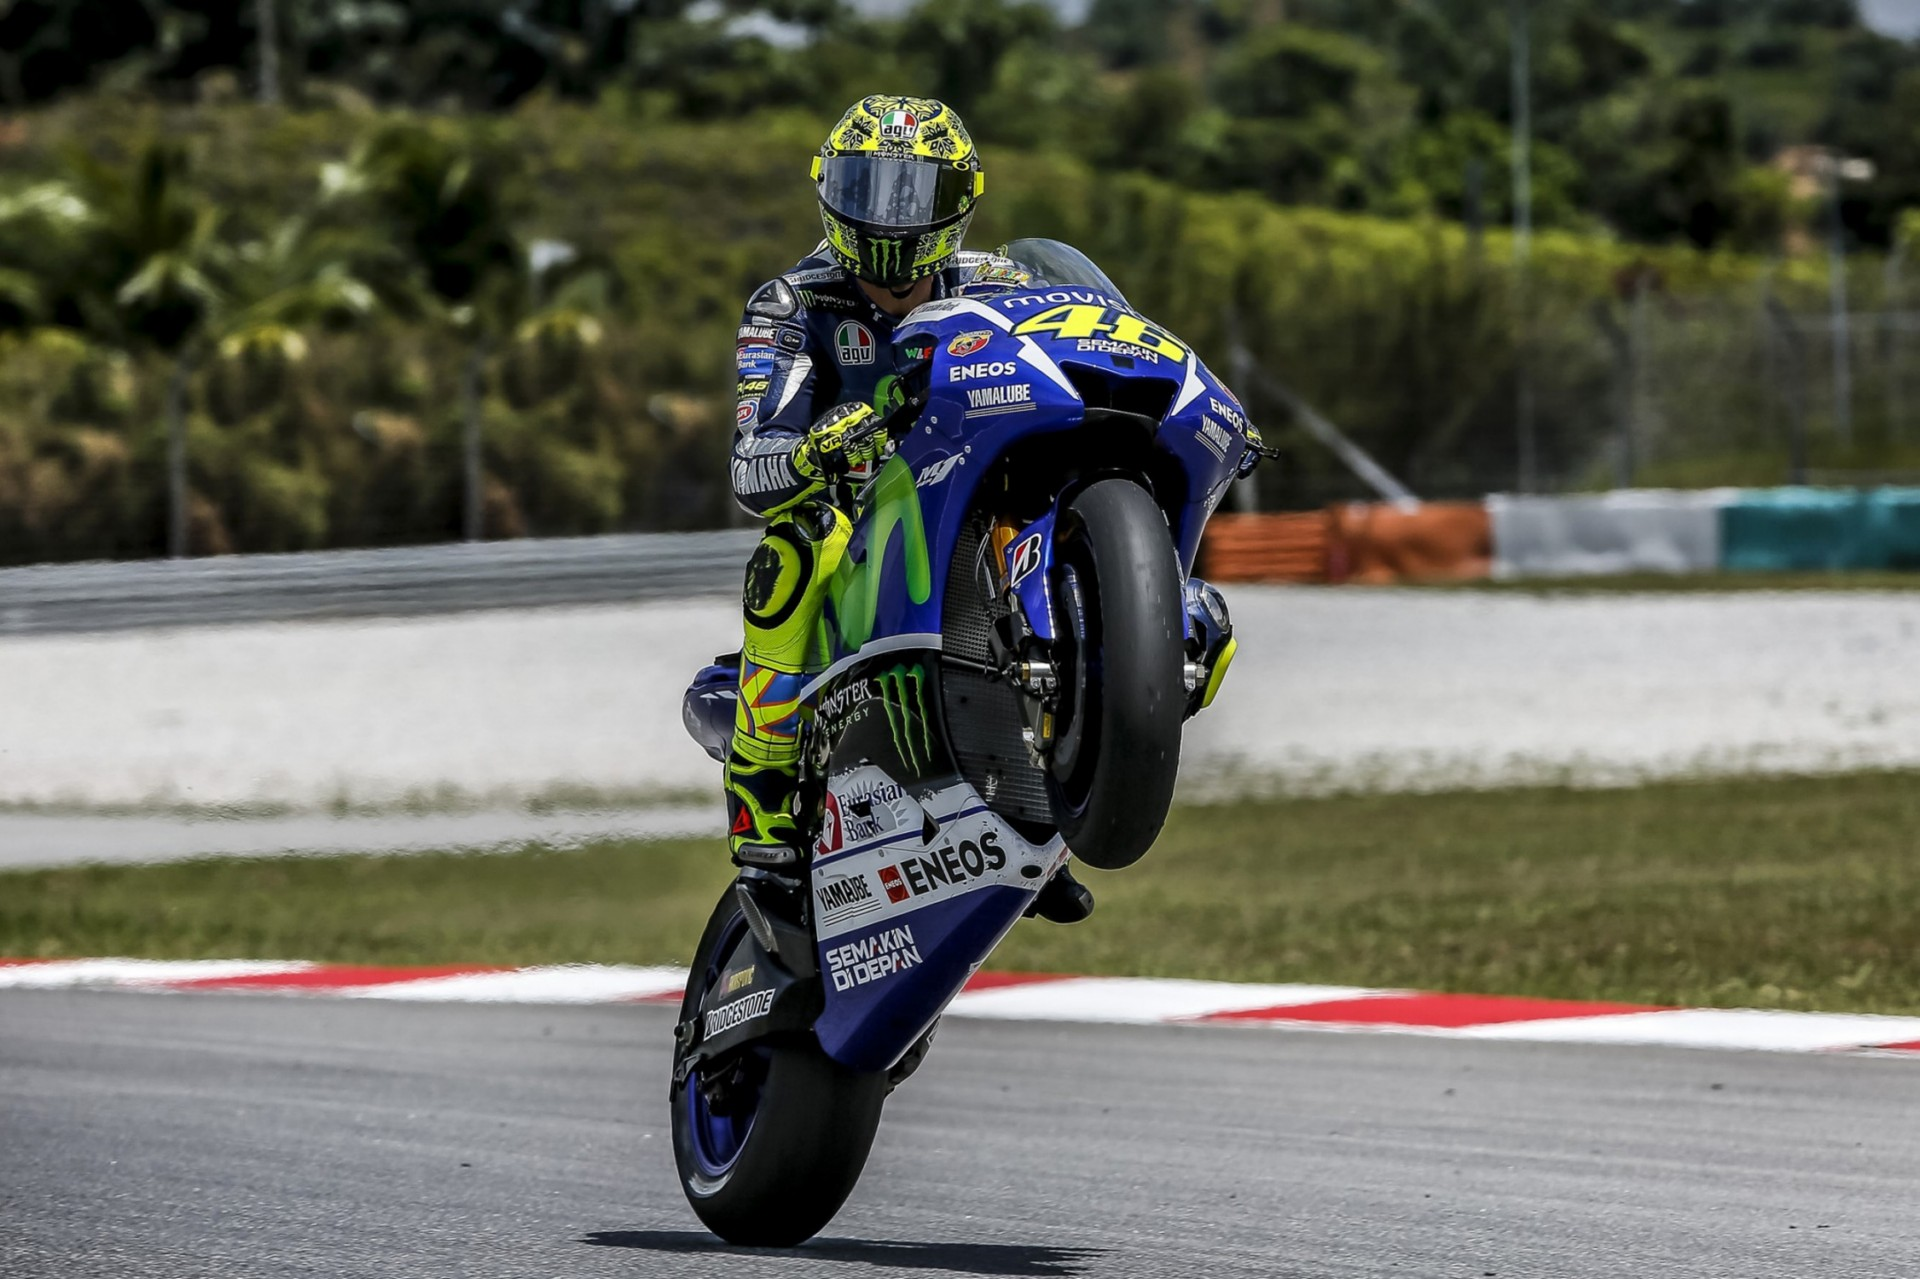 Valentino Rossi I Want The Title Linda And A Son